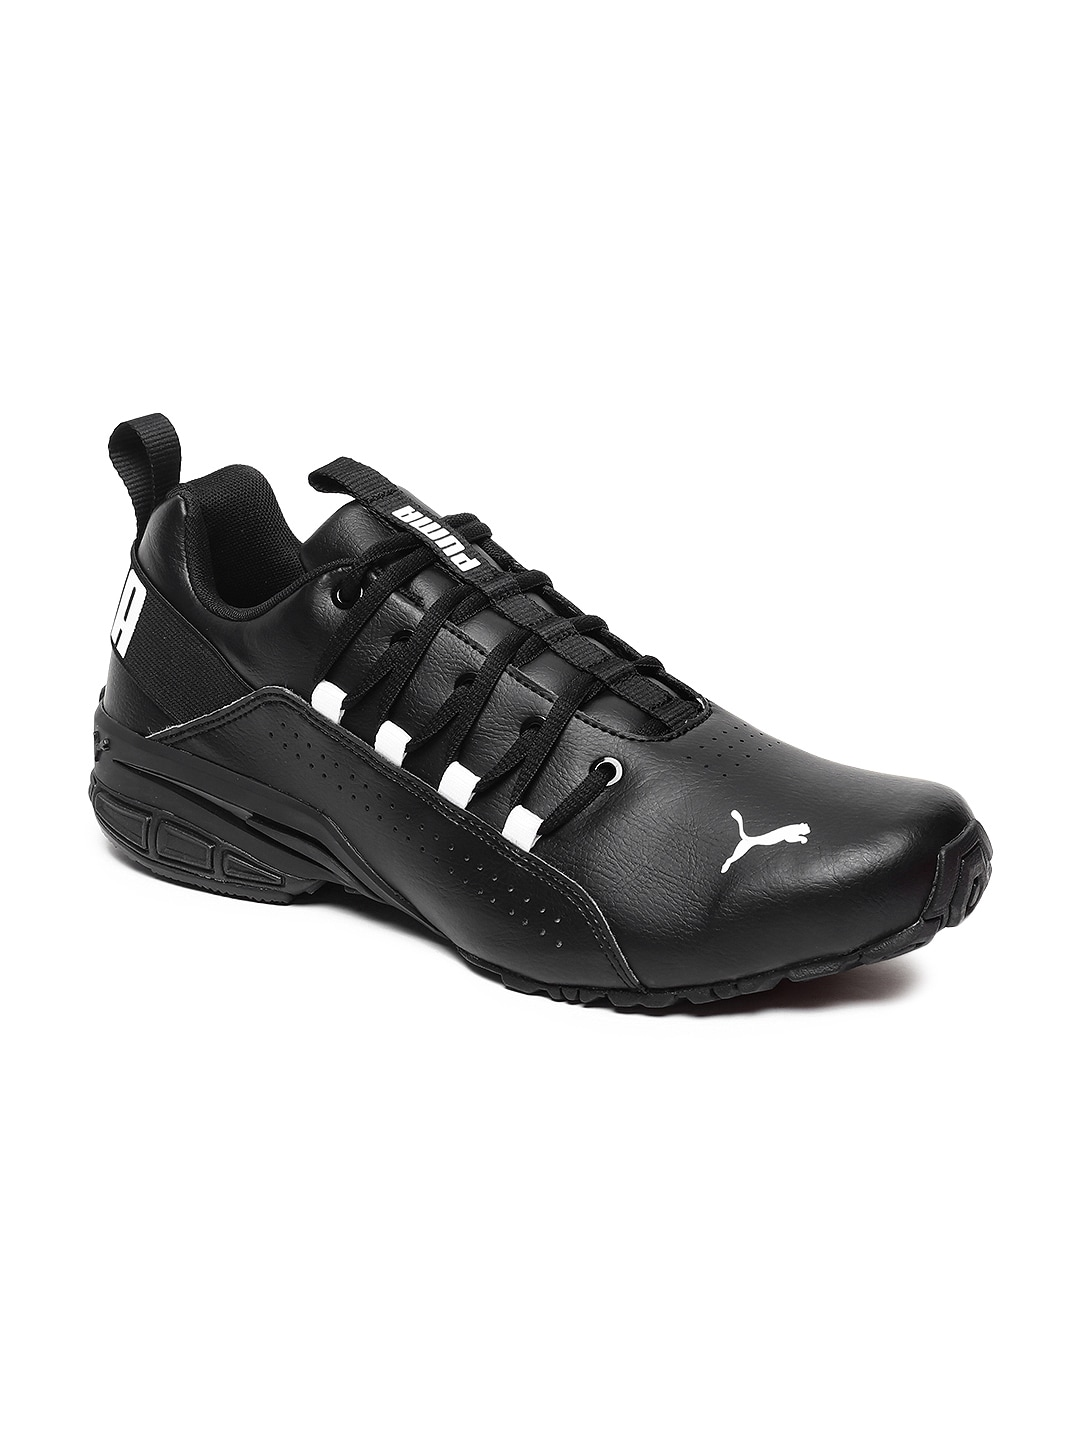 c2fbd528ade Puma Men Black Hexa Dot Running Shoes